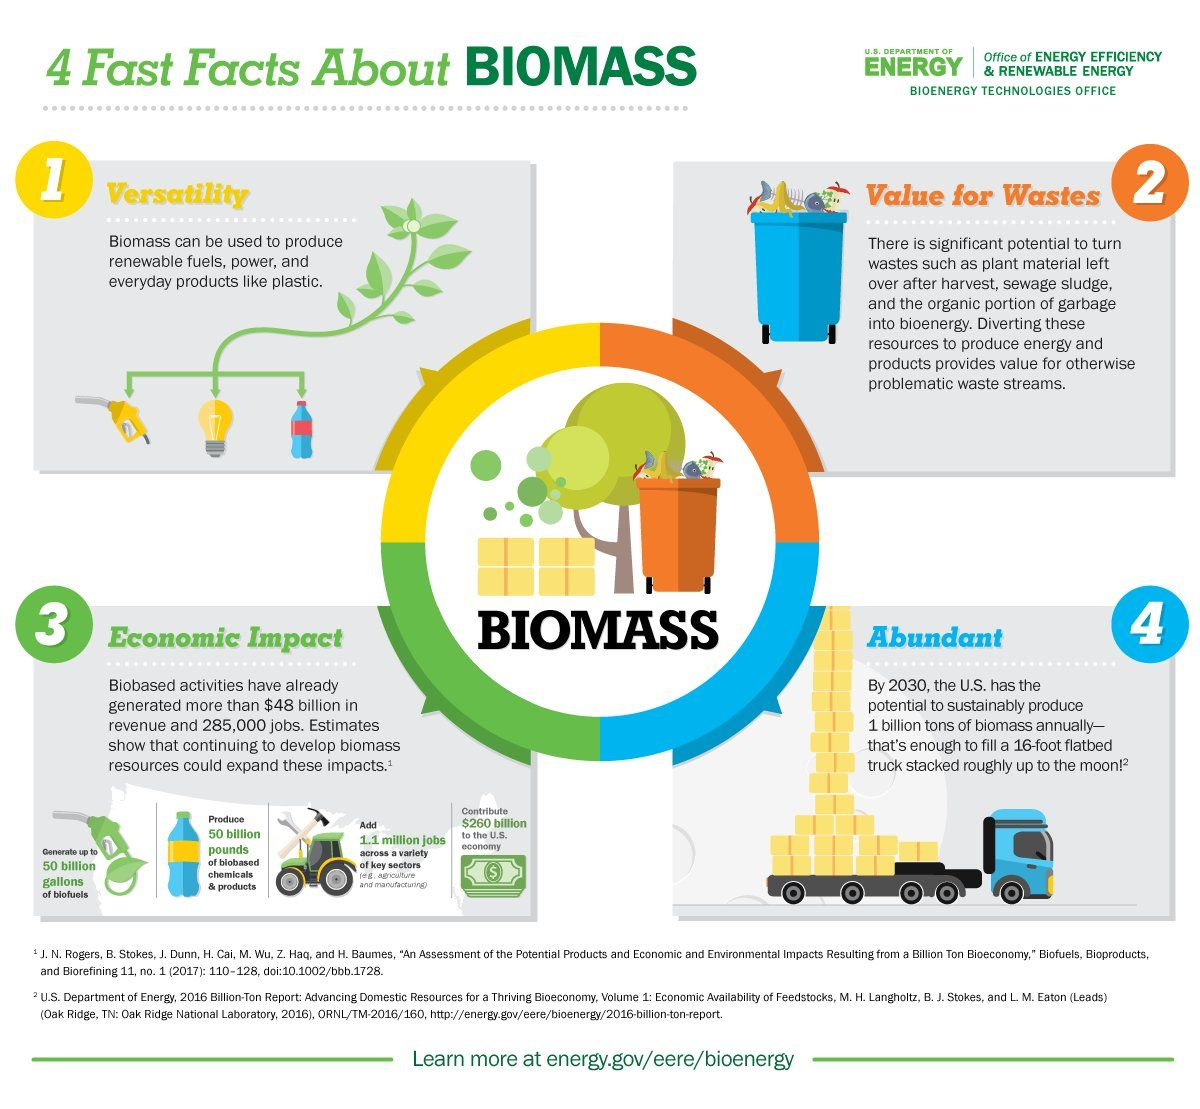 Biomass Facts From The Idaho National Lab Inl